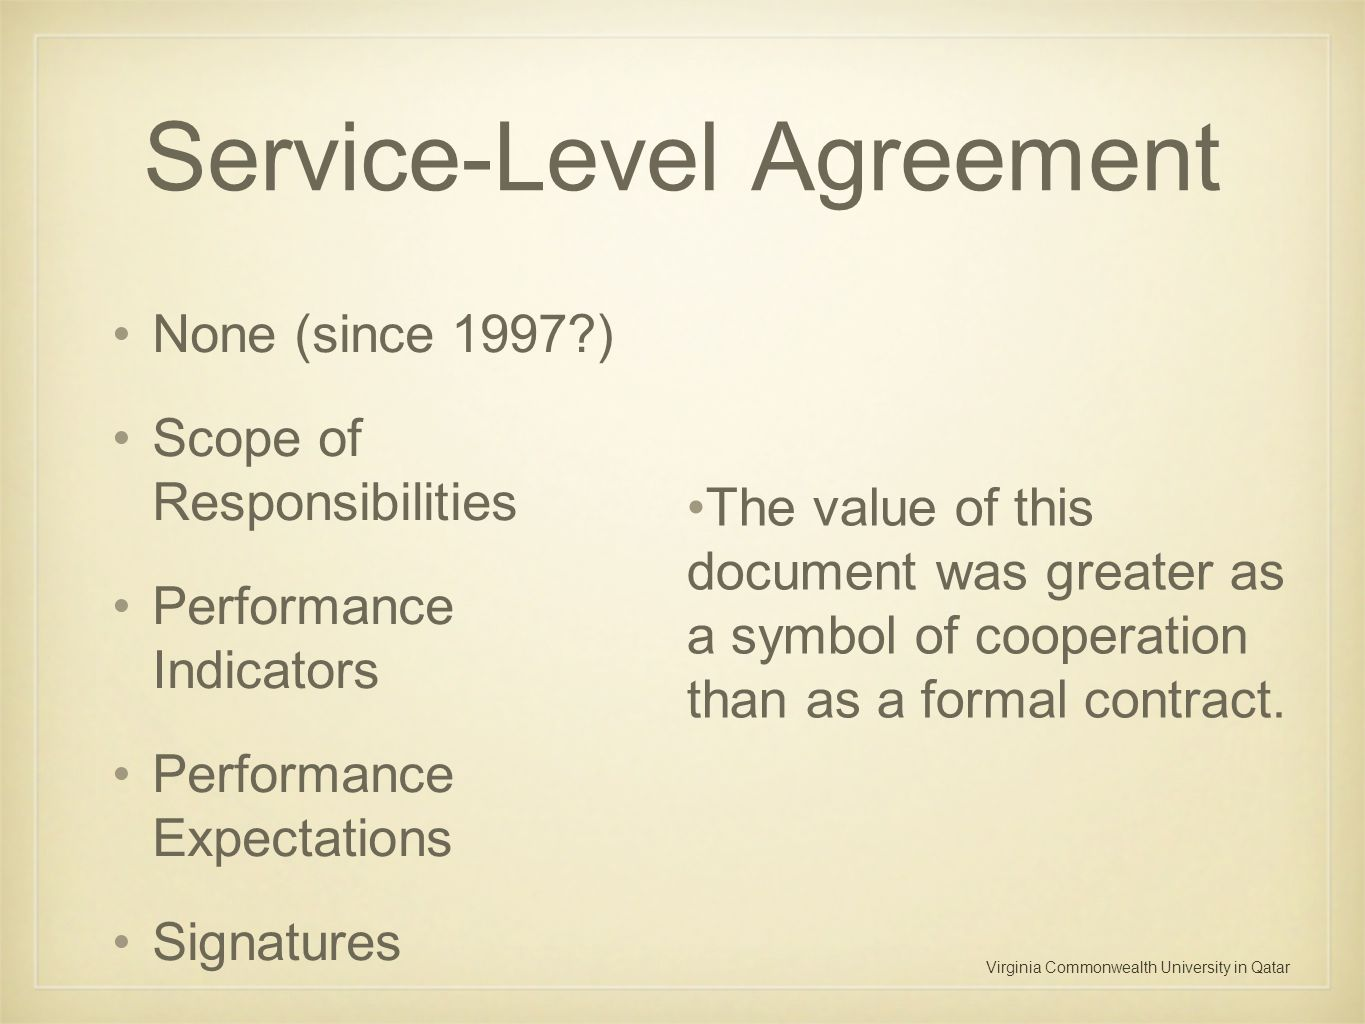 Virginia Commonwealth University in Qatar Service-Level Agreement None (since 1997?) Scope of Responsibilities Performance Indicators Performance Expe